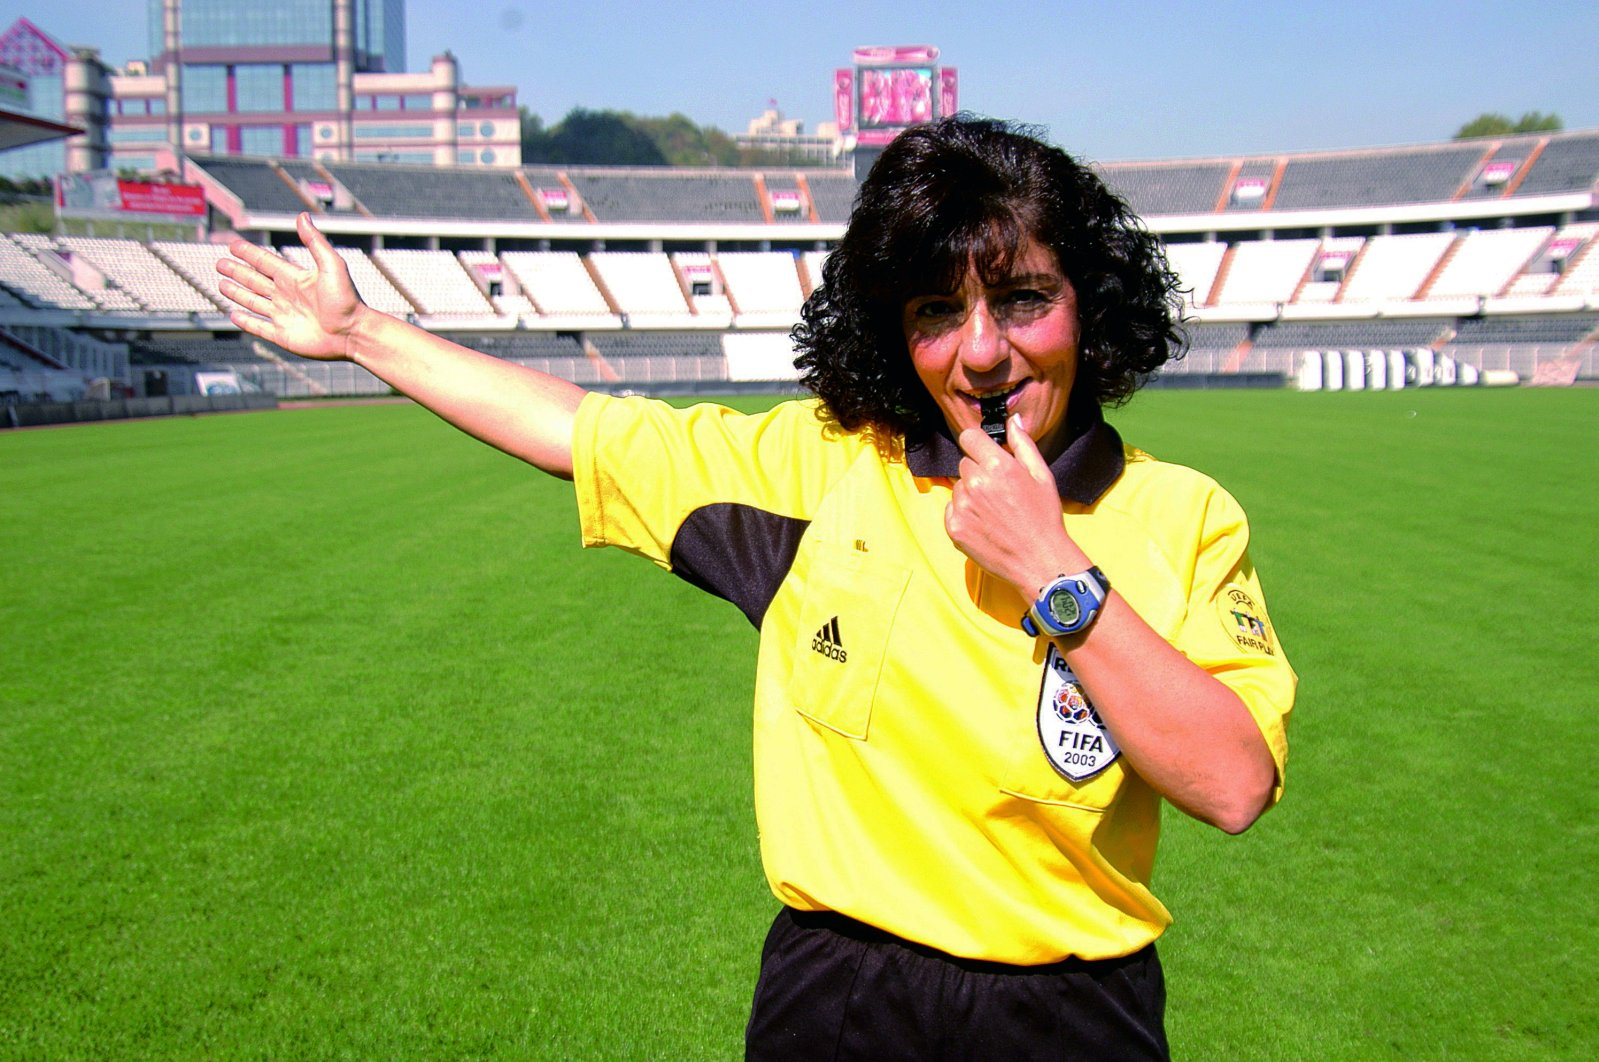 An undated photo of Lale Orta, Turkey's first female FIFA-listed referee, on a pitch in her FIFA uniform. (Sabah File Photo)